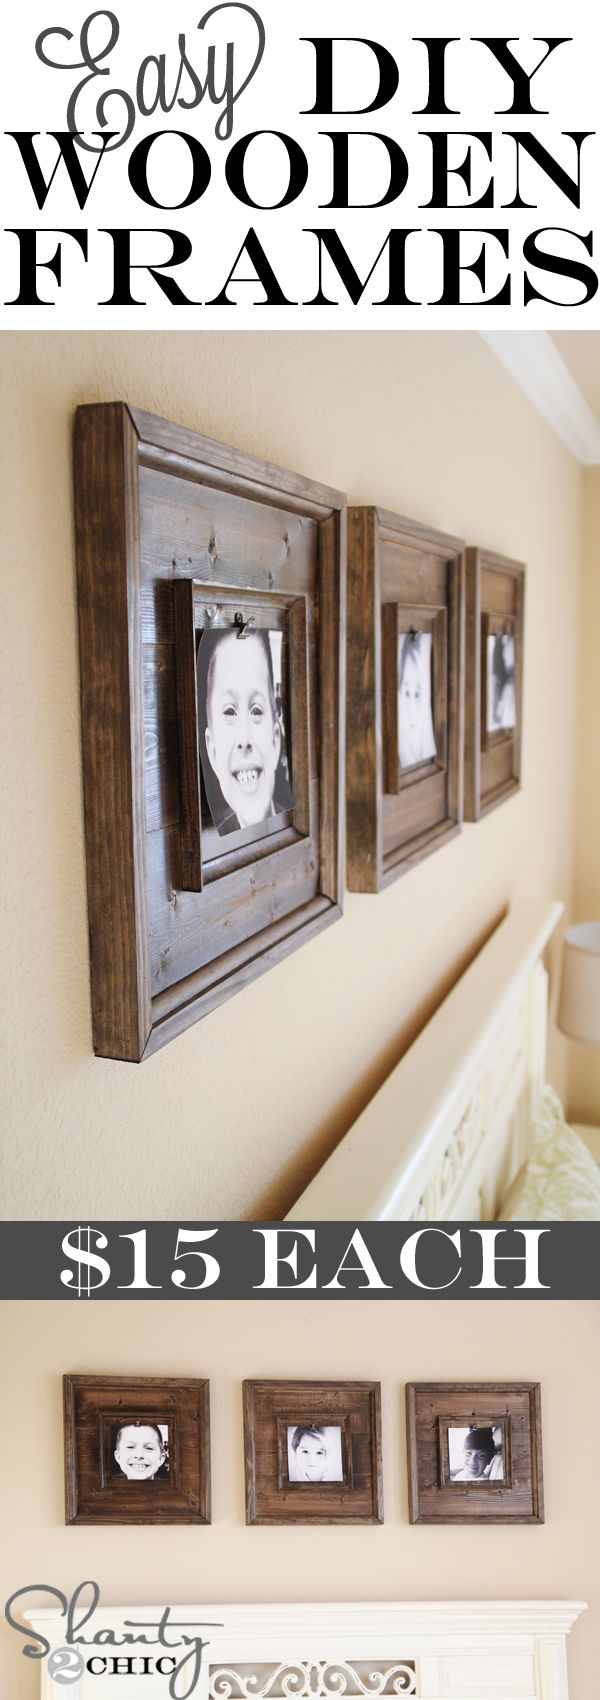 Easy DIY Wooden Frames